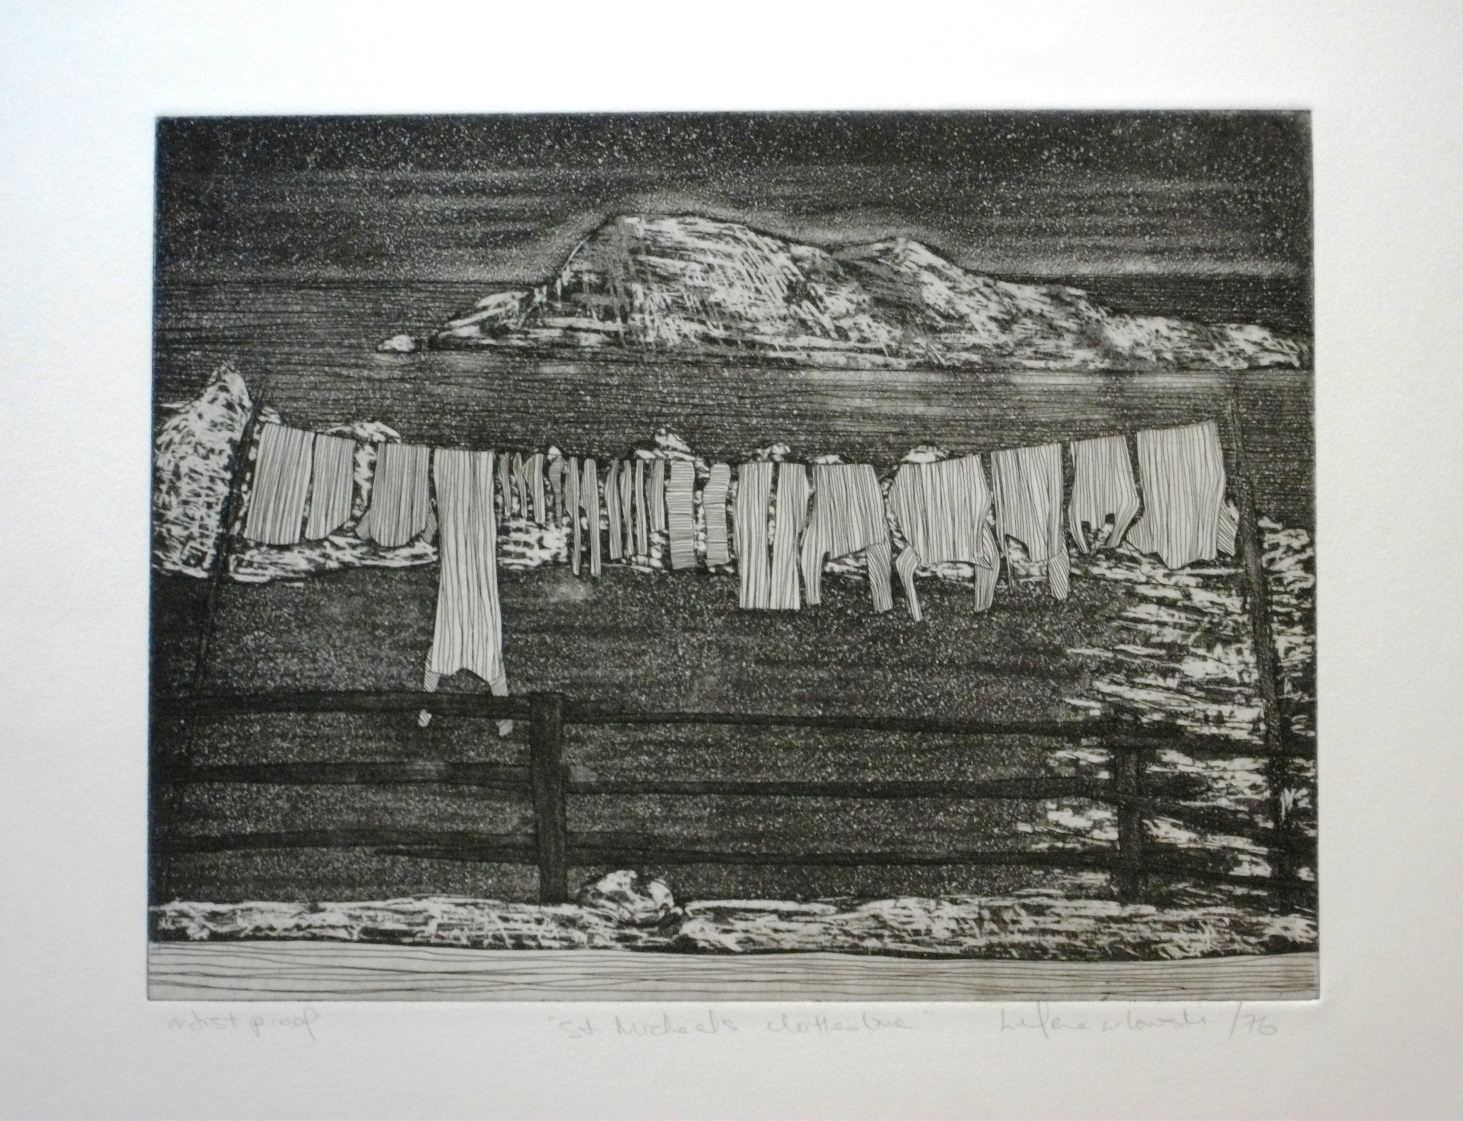 St.-Michael_s-Clothesline-etching-225-x-295, by the artist Helena Orlowski